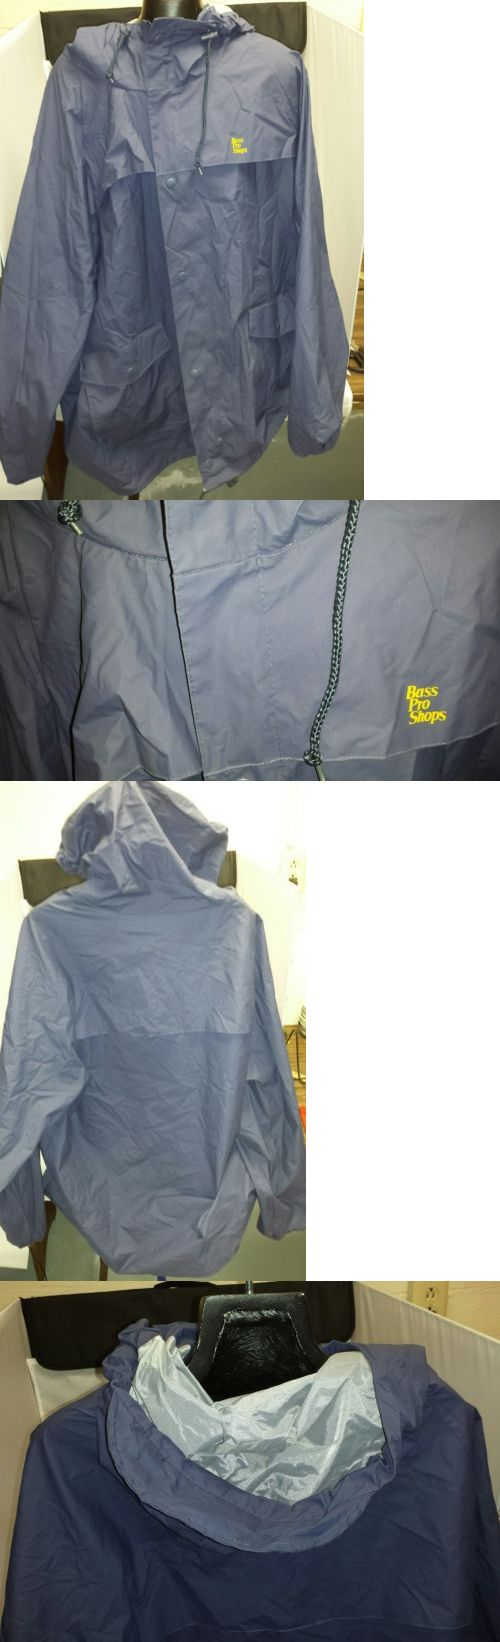 Jackets and Coats 65976: Bass Pro Shop Rain Coat Slicker Xxl With Hood Fishing Gear BUY IT NOW ONLY: $59.99